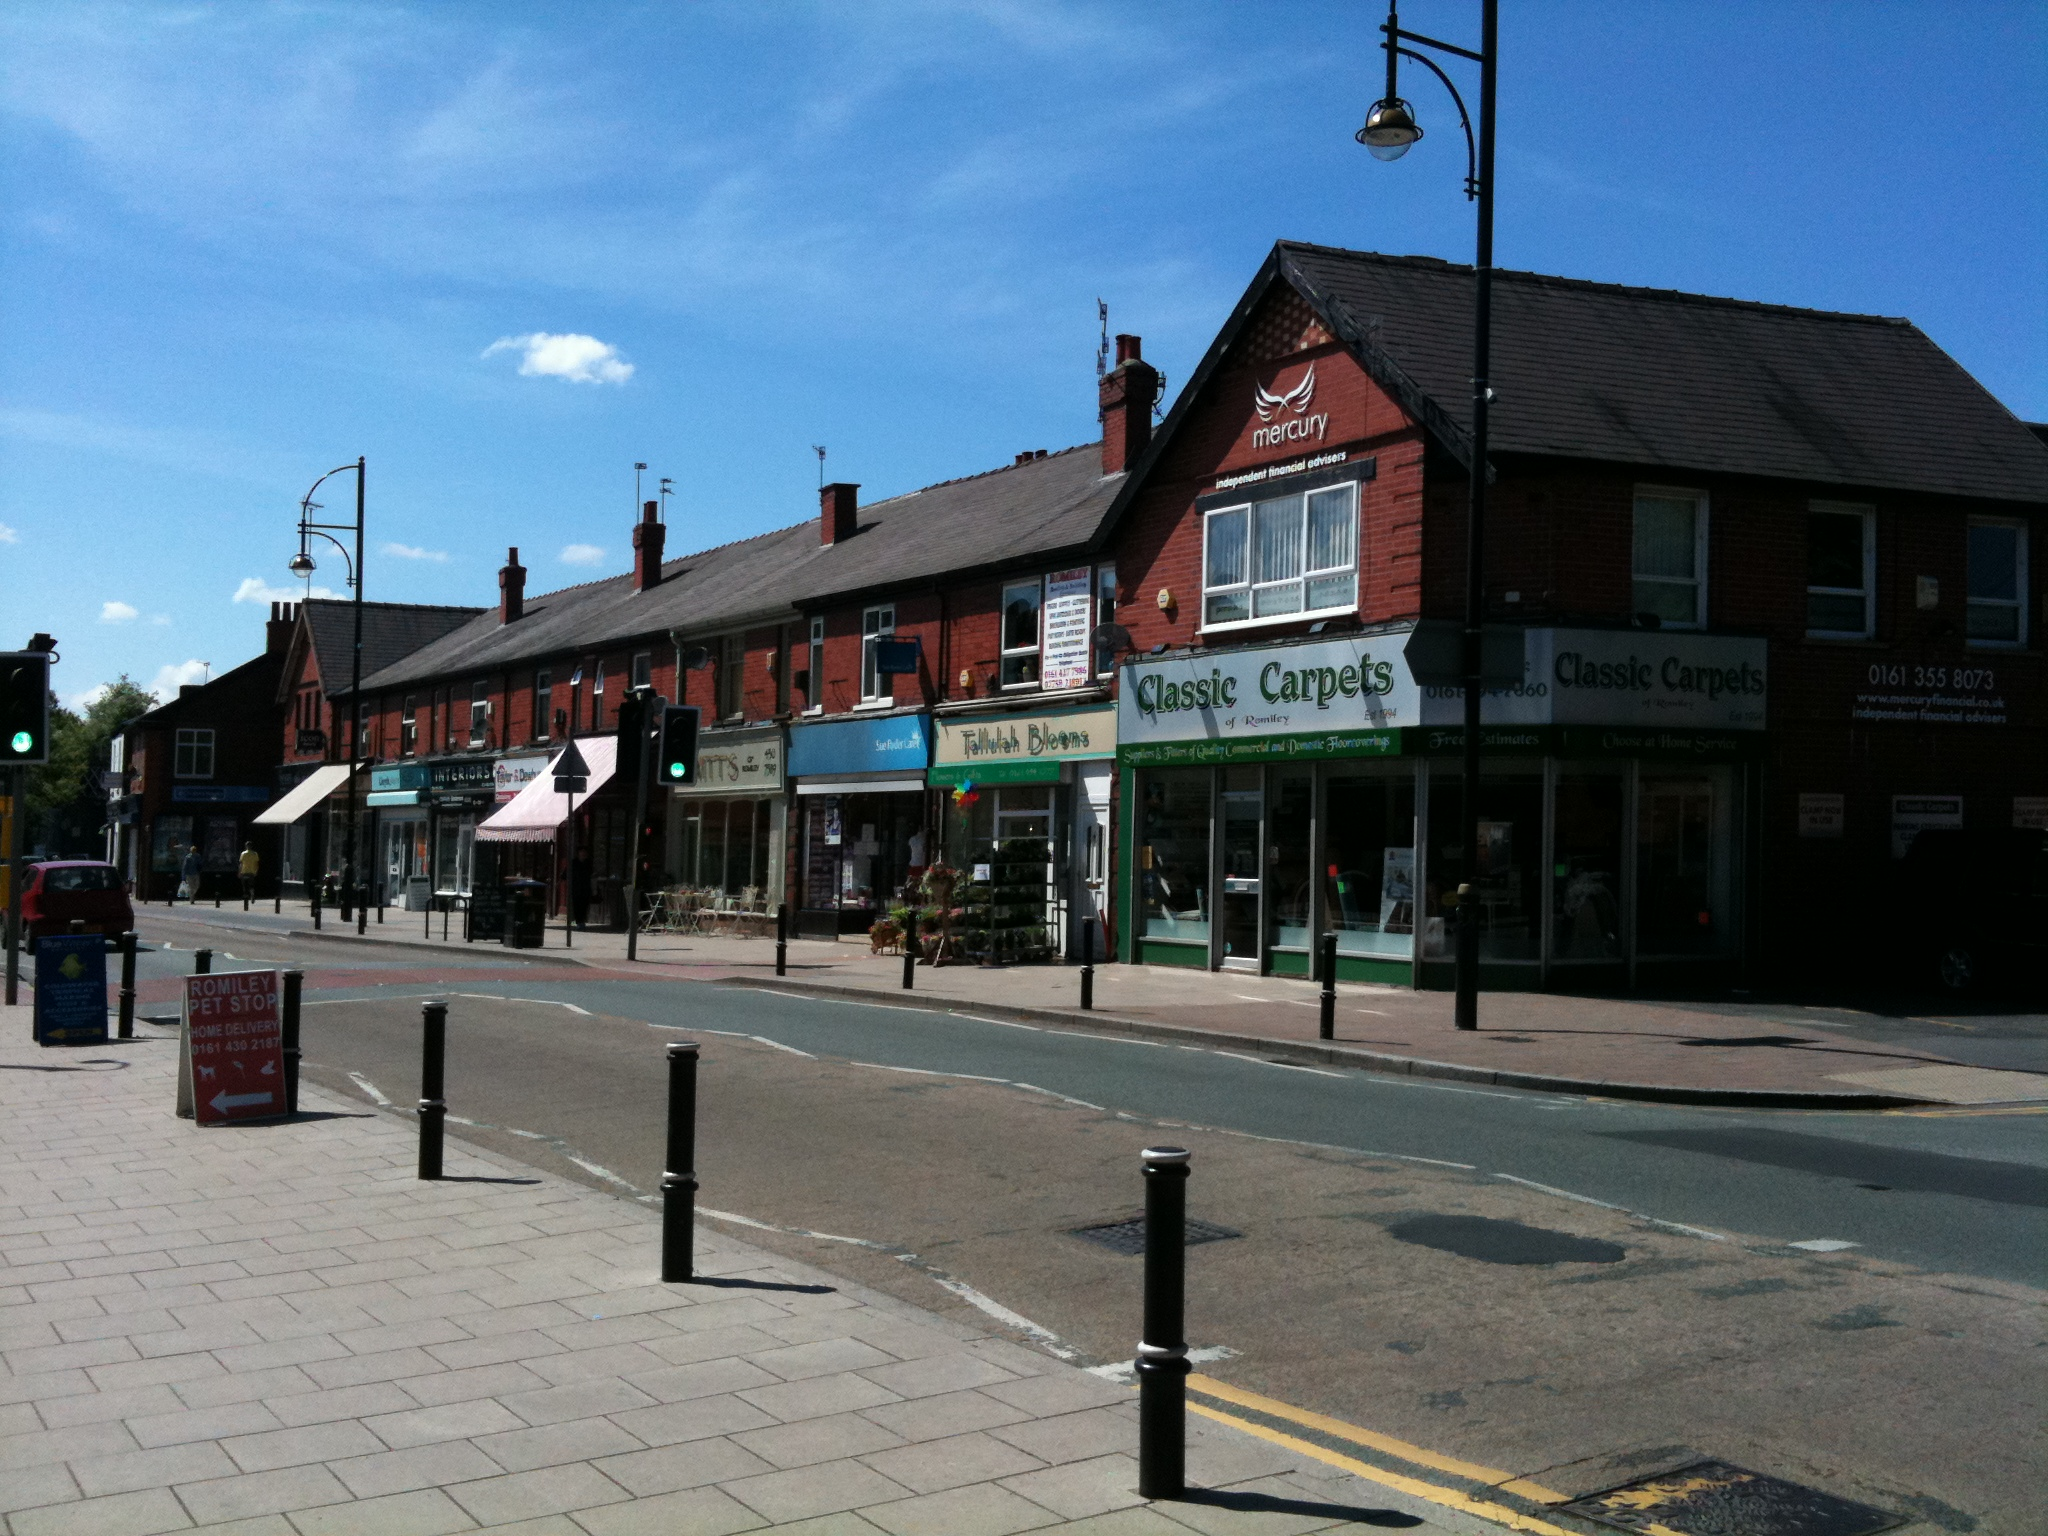 FileCompstall Road Romiley